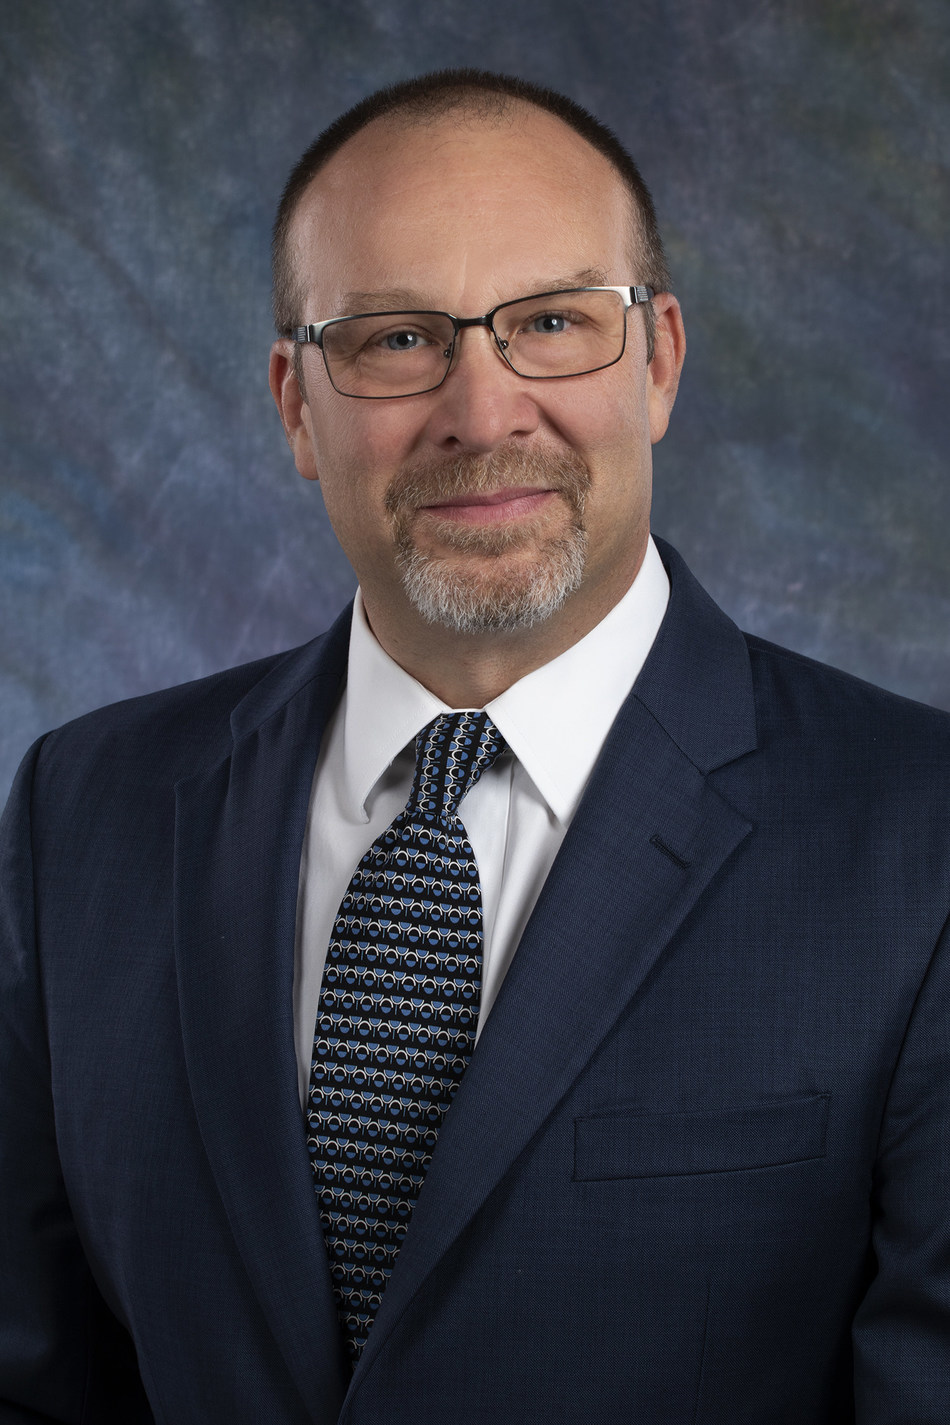 Dr. Brad E. Hollingshead appointed by Florida Southern College President Anne Kerr as Provost and Vice President for Academic Affairs.